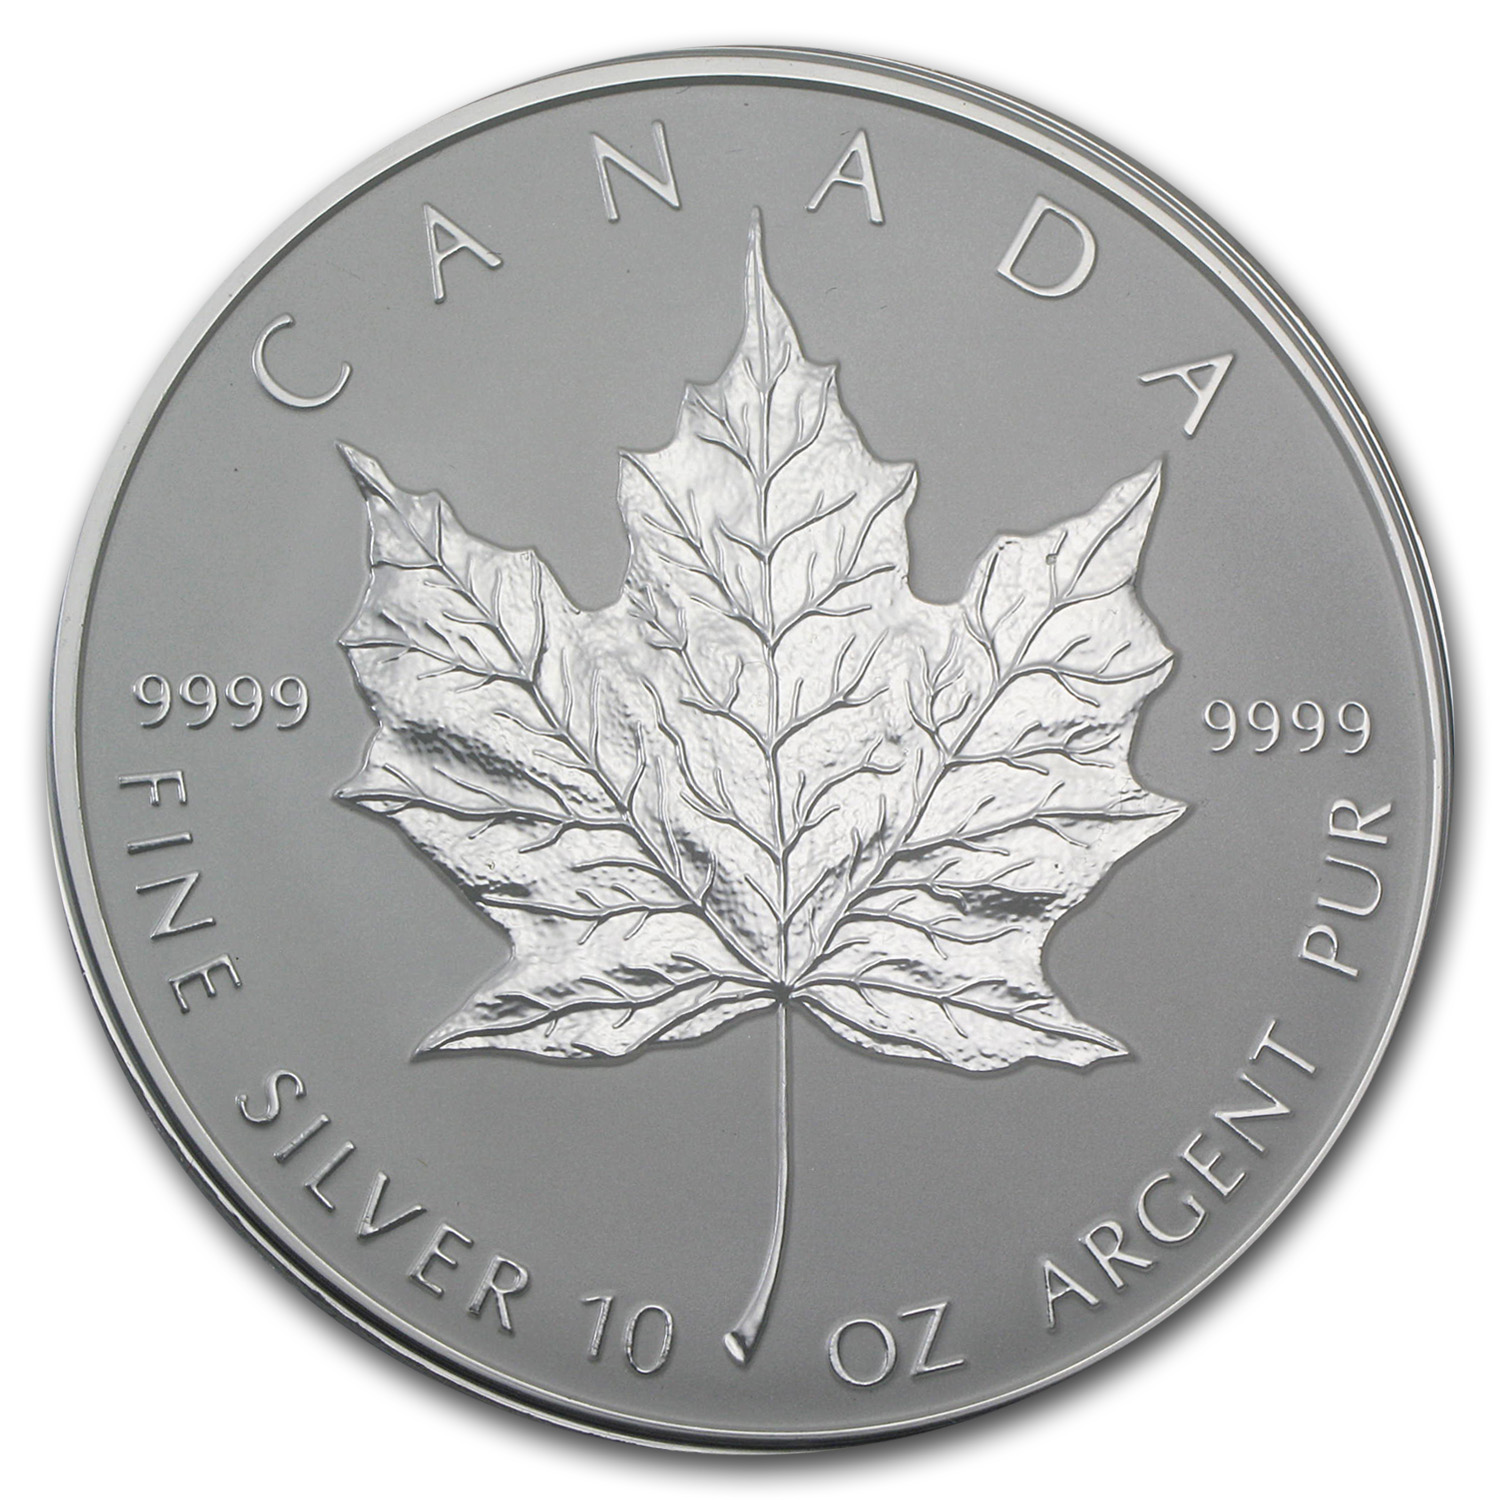 1998 Canada 10 oz Silver $50 Maple Leaf (10th Anniversary)